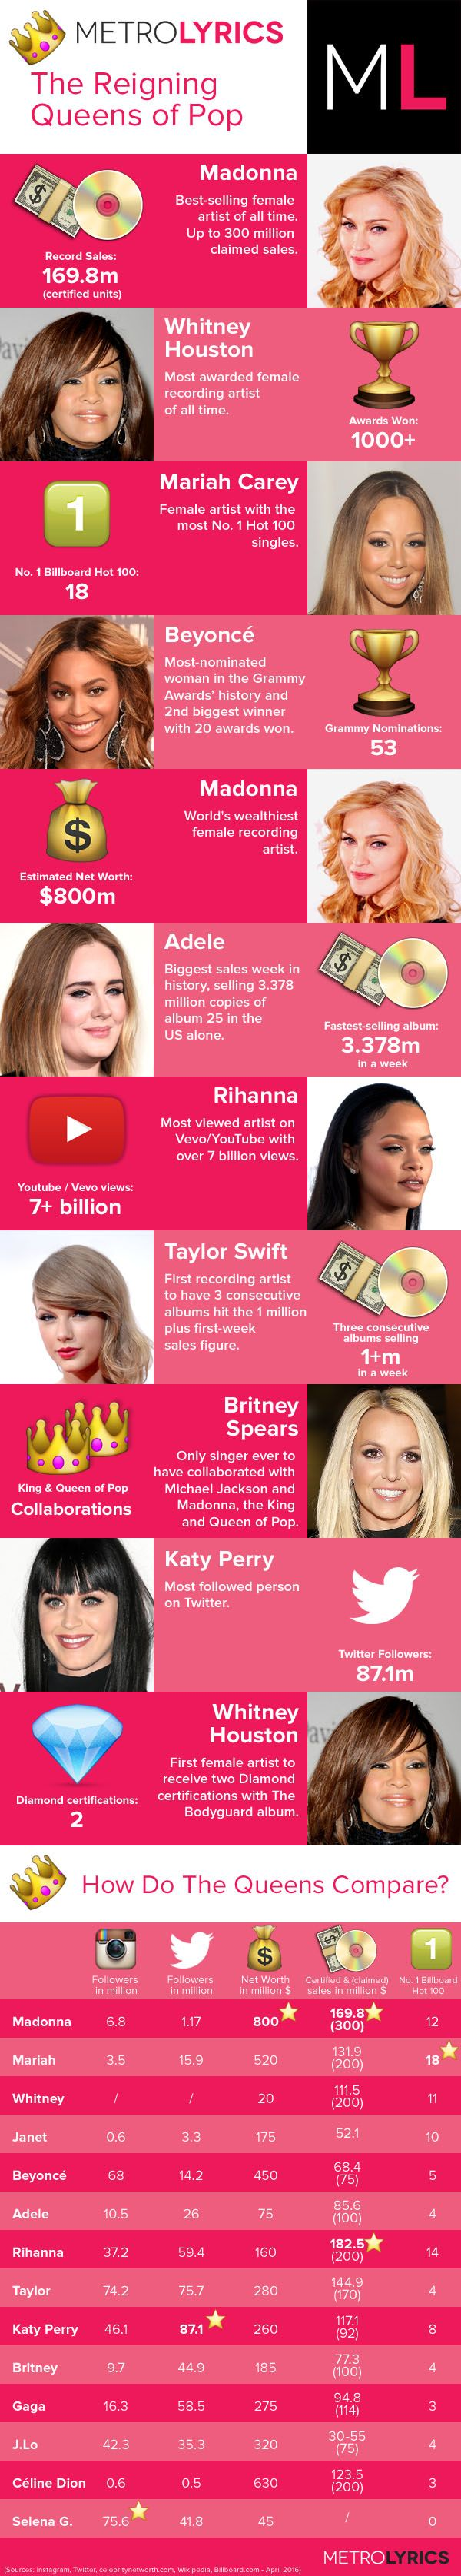 The Golden Age of Pop – Music Royalty in 2016 Given the stellar releases to come out in the past few years, we are living in a new Golden Age of Pop, with women are leading the way in terms of influence, sales and activism. Adele's latest album 25 has been dominating sales, accounting for 3 percent of music purchases in the US in 2015. Katy Perry also became the highest music earner of last year with $135 Million 2016 looks even more promising. Rihanna's already had a massive No. 1 Hit with…